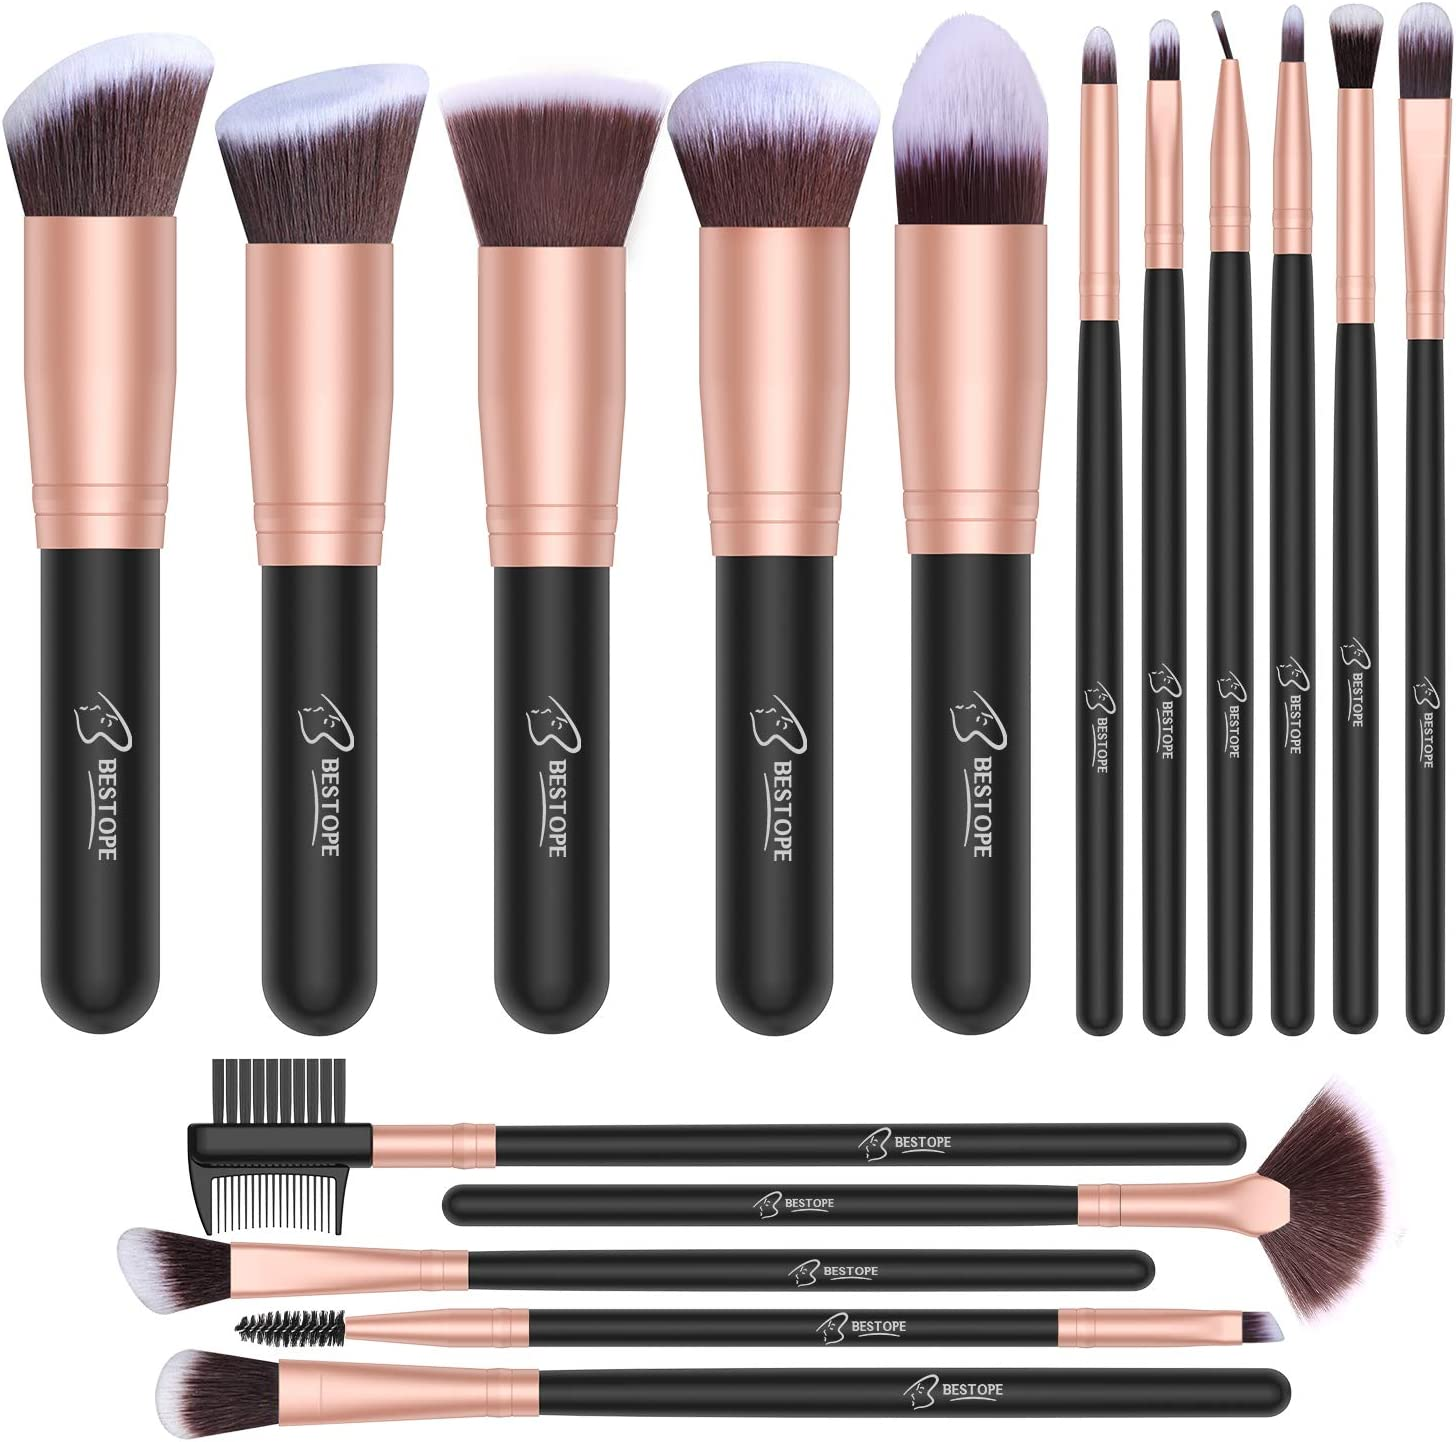 Set de brochas de maquillaje profesional BESTOPE 16 piezas Pinceles de maquillaje Set Premium Synthetic Foundation Brush Blending Face Powder Blush Concealers Kit de pinceles (Rose Golden): Amazon.es: Belleza